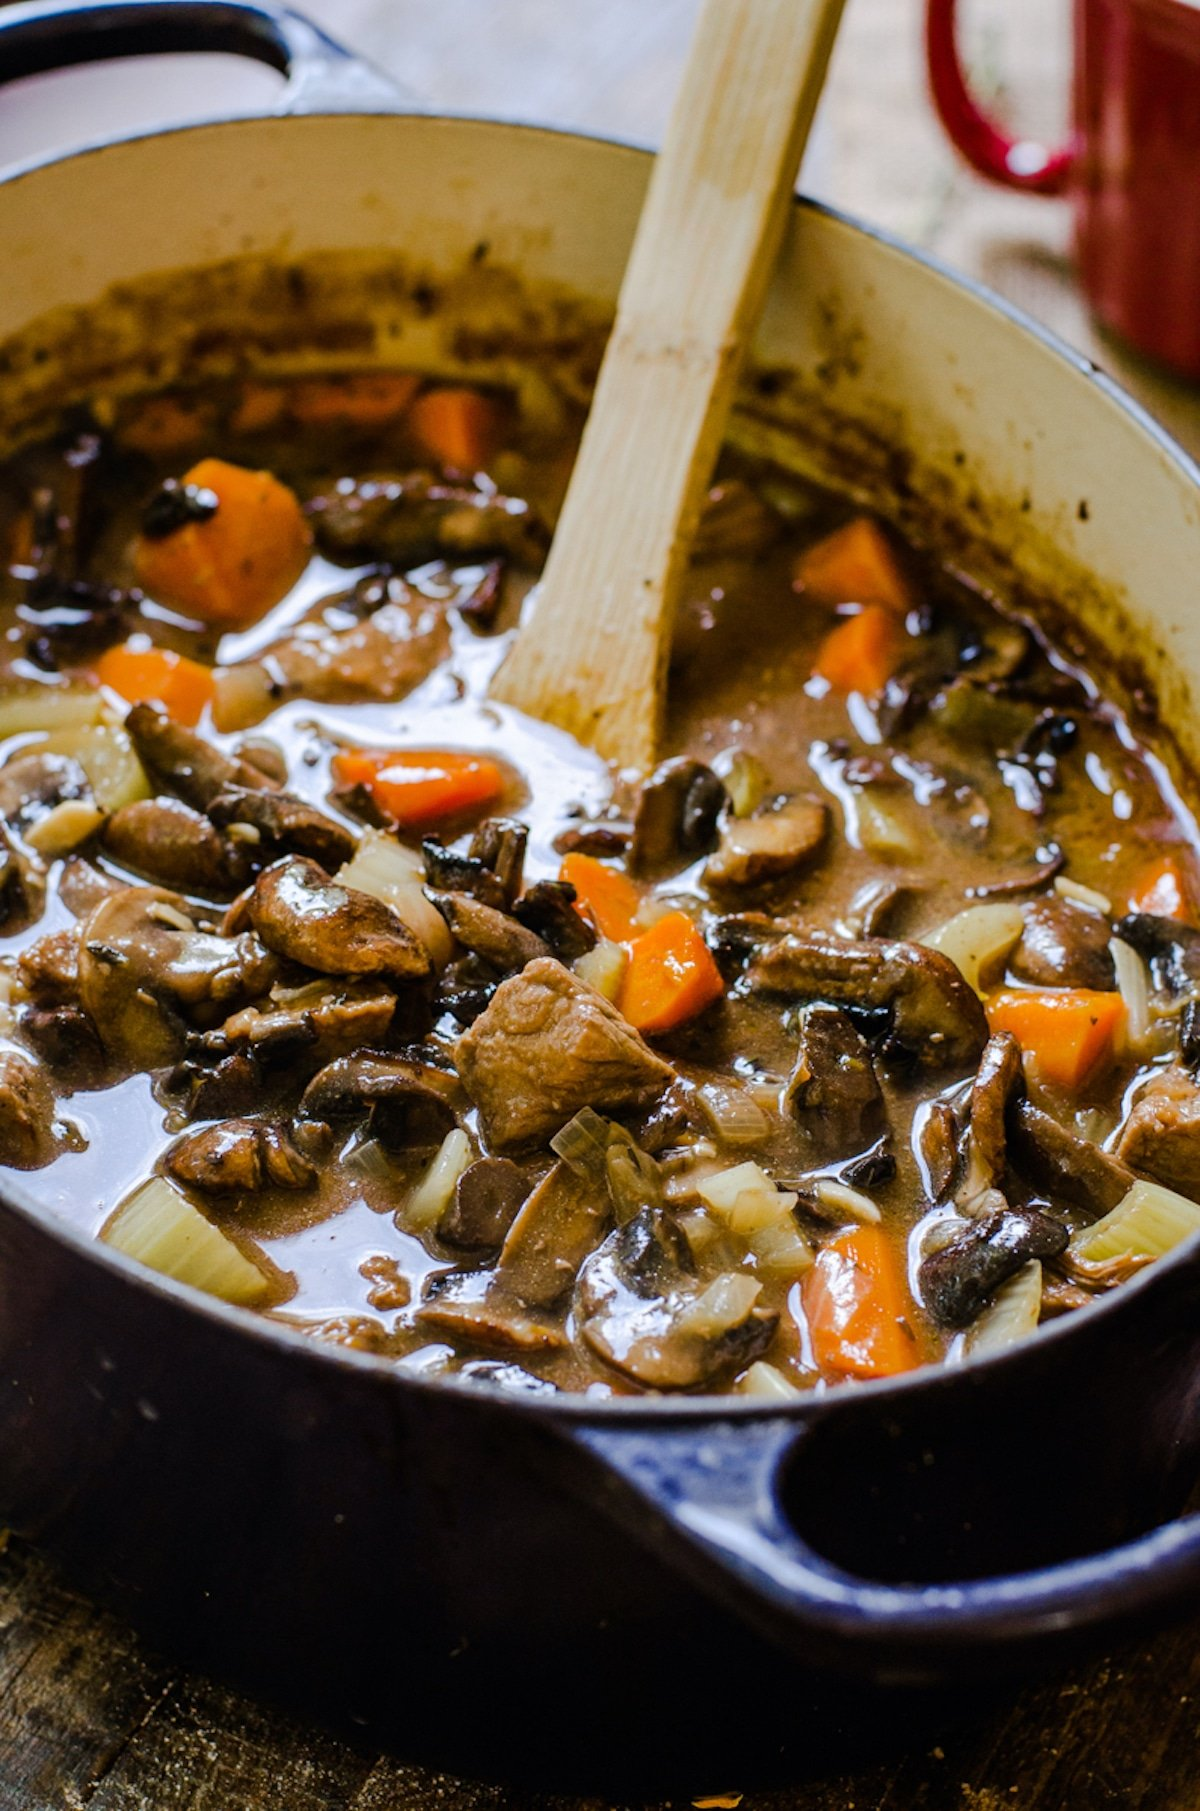 A wooden spoon coming out of a pot of hearty soup.